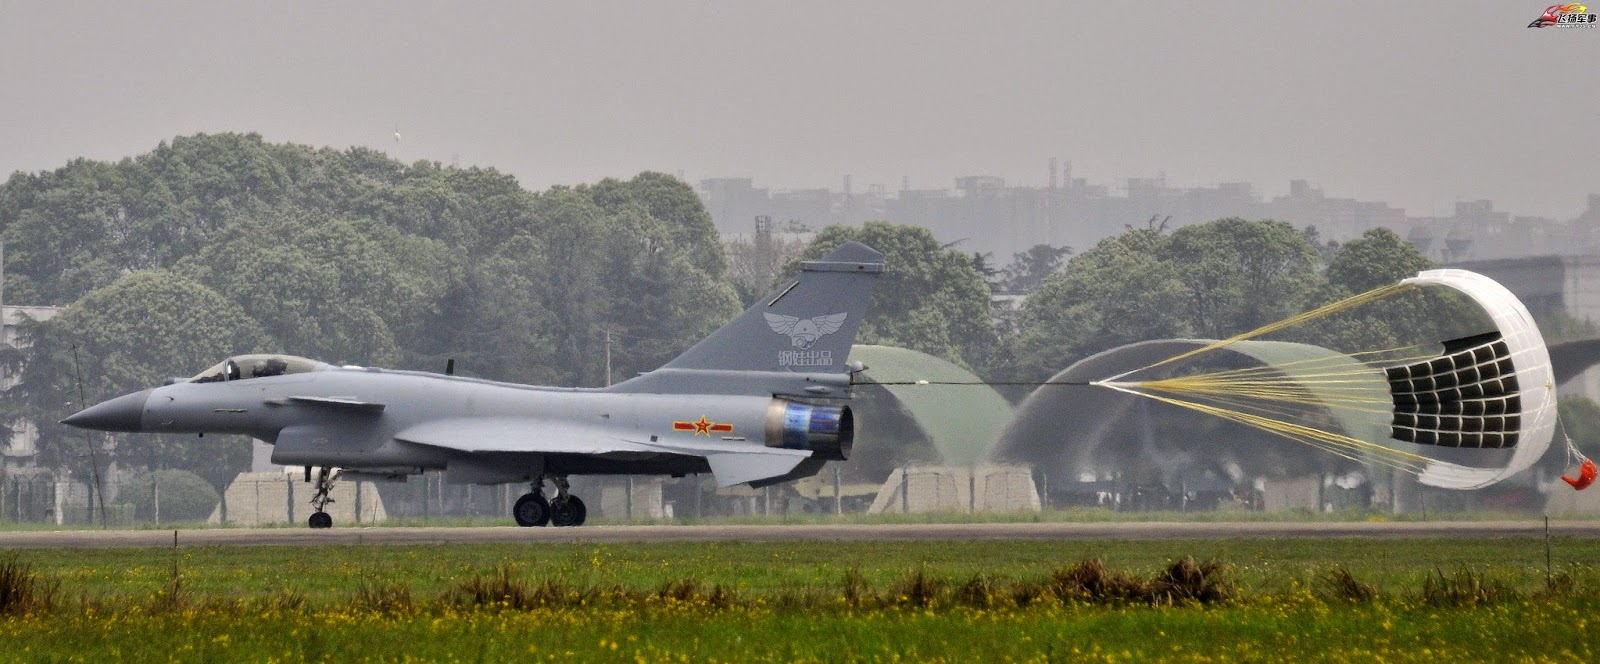 J-10B fighter jet of the People's Liberation Army Air Force (PLAAF) | Chinese Military Review